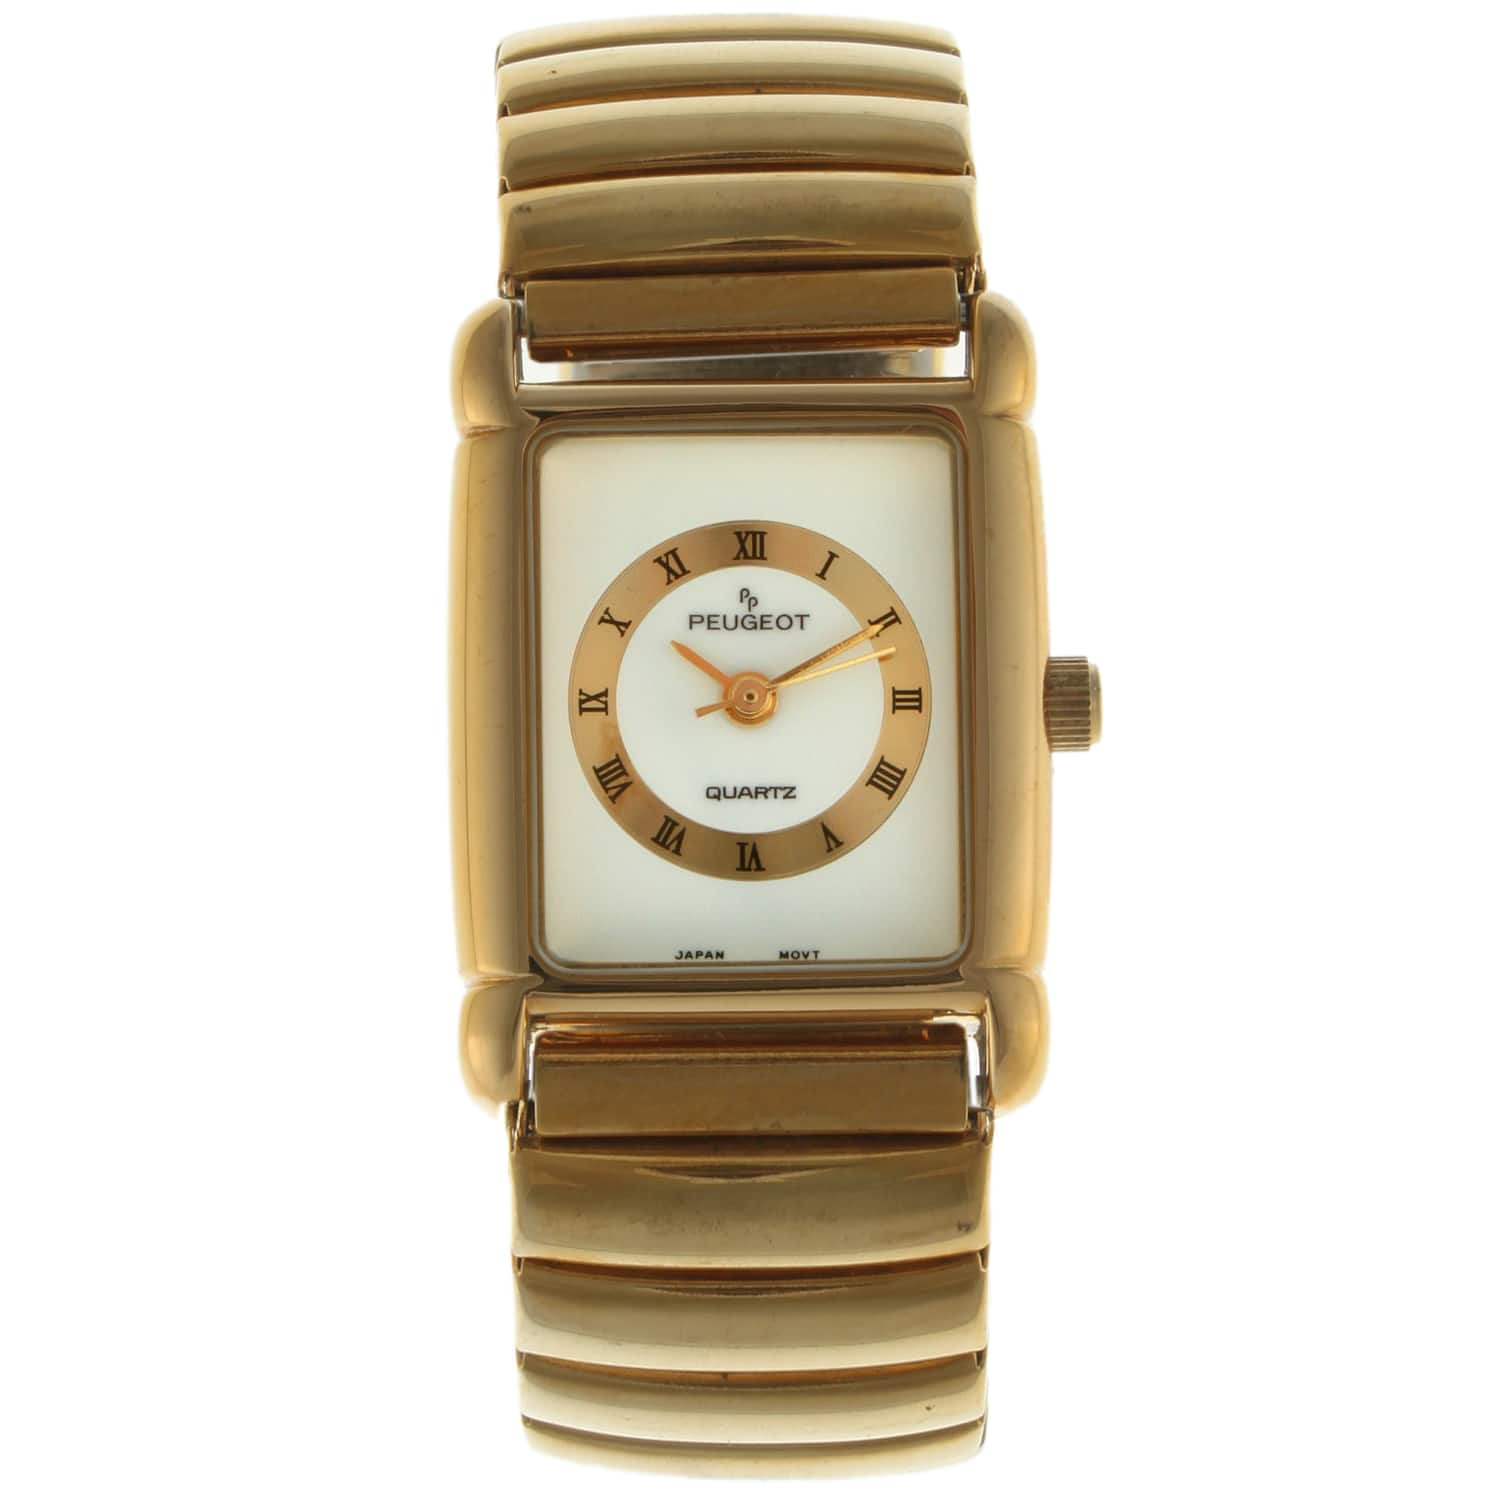 Peugeot Women's Goldtone Stainless Steel Expansion Watch|https://ak1.ostkcdn.com/images/products/7194577/80/575/Peugeot-Womens-Goldtone-Stainless-Steel-Expansion-Watch-P14681320.jpg?impolicy=medium